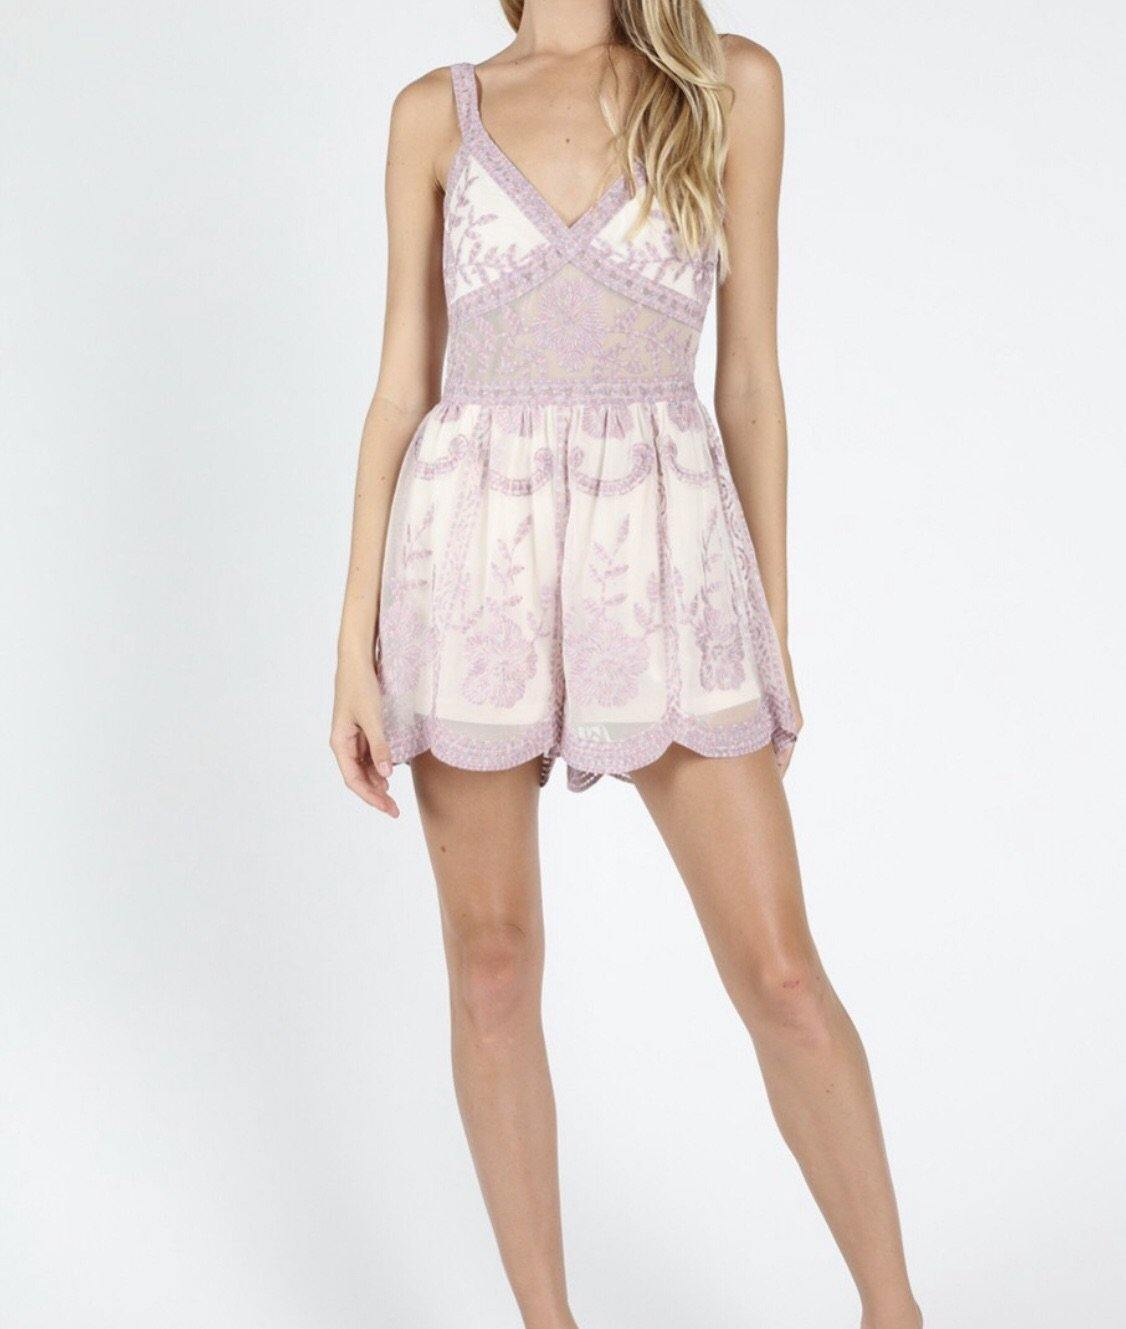 LILIANNA LACE EMBROIDERED ROMPER - elbie boutique, LLC